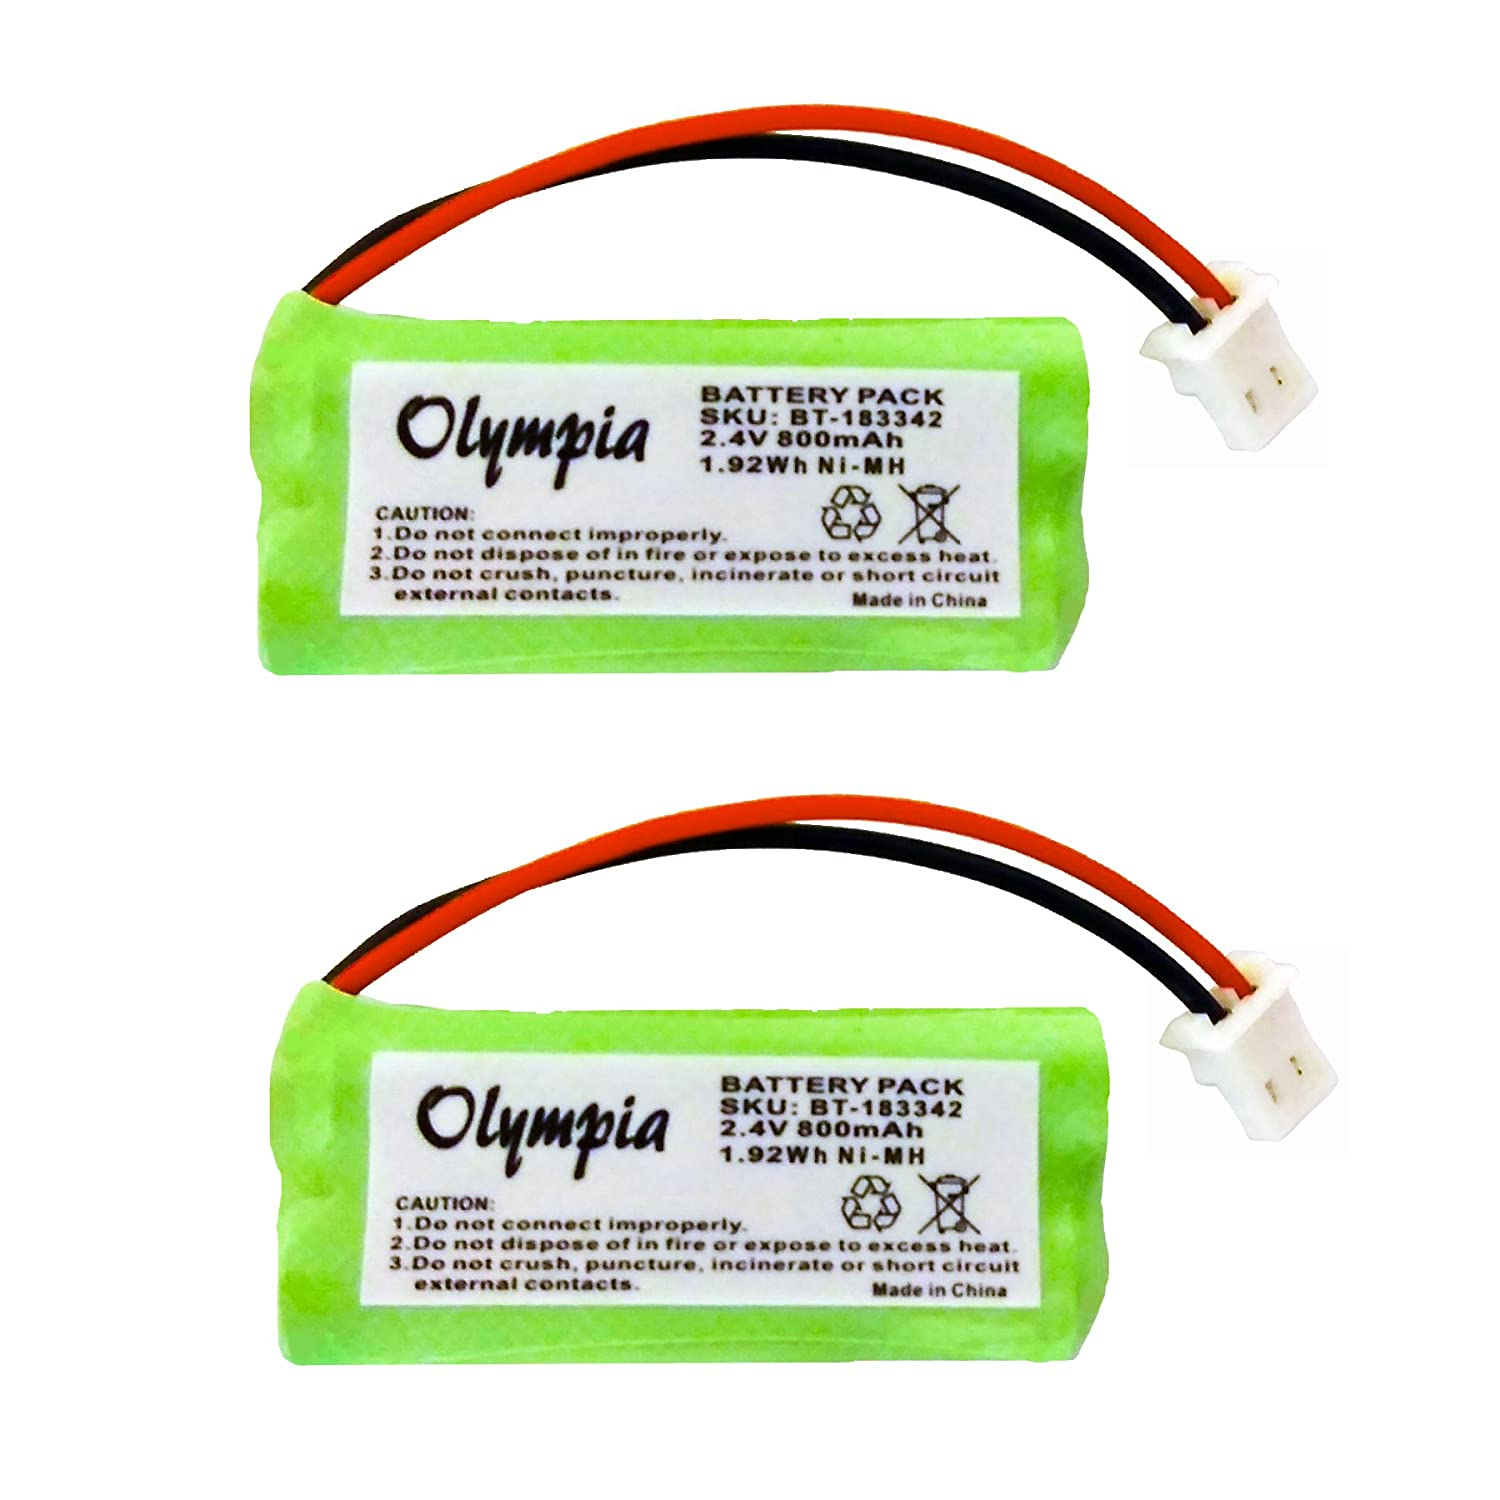 2 Pack of Uniden DWX337 Battery - Replacement for Uniden Cordless Phone Battery (Type A Connector) Olympia Battery BT183342A-2pack-349